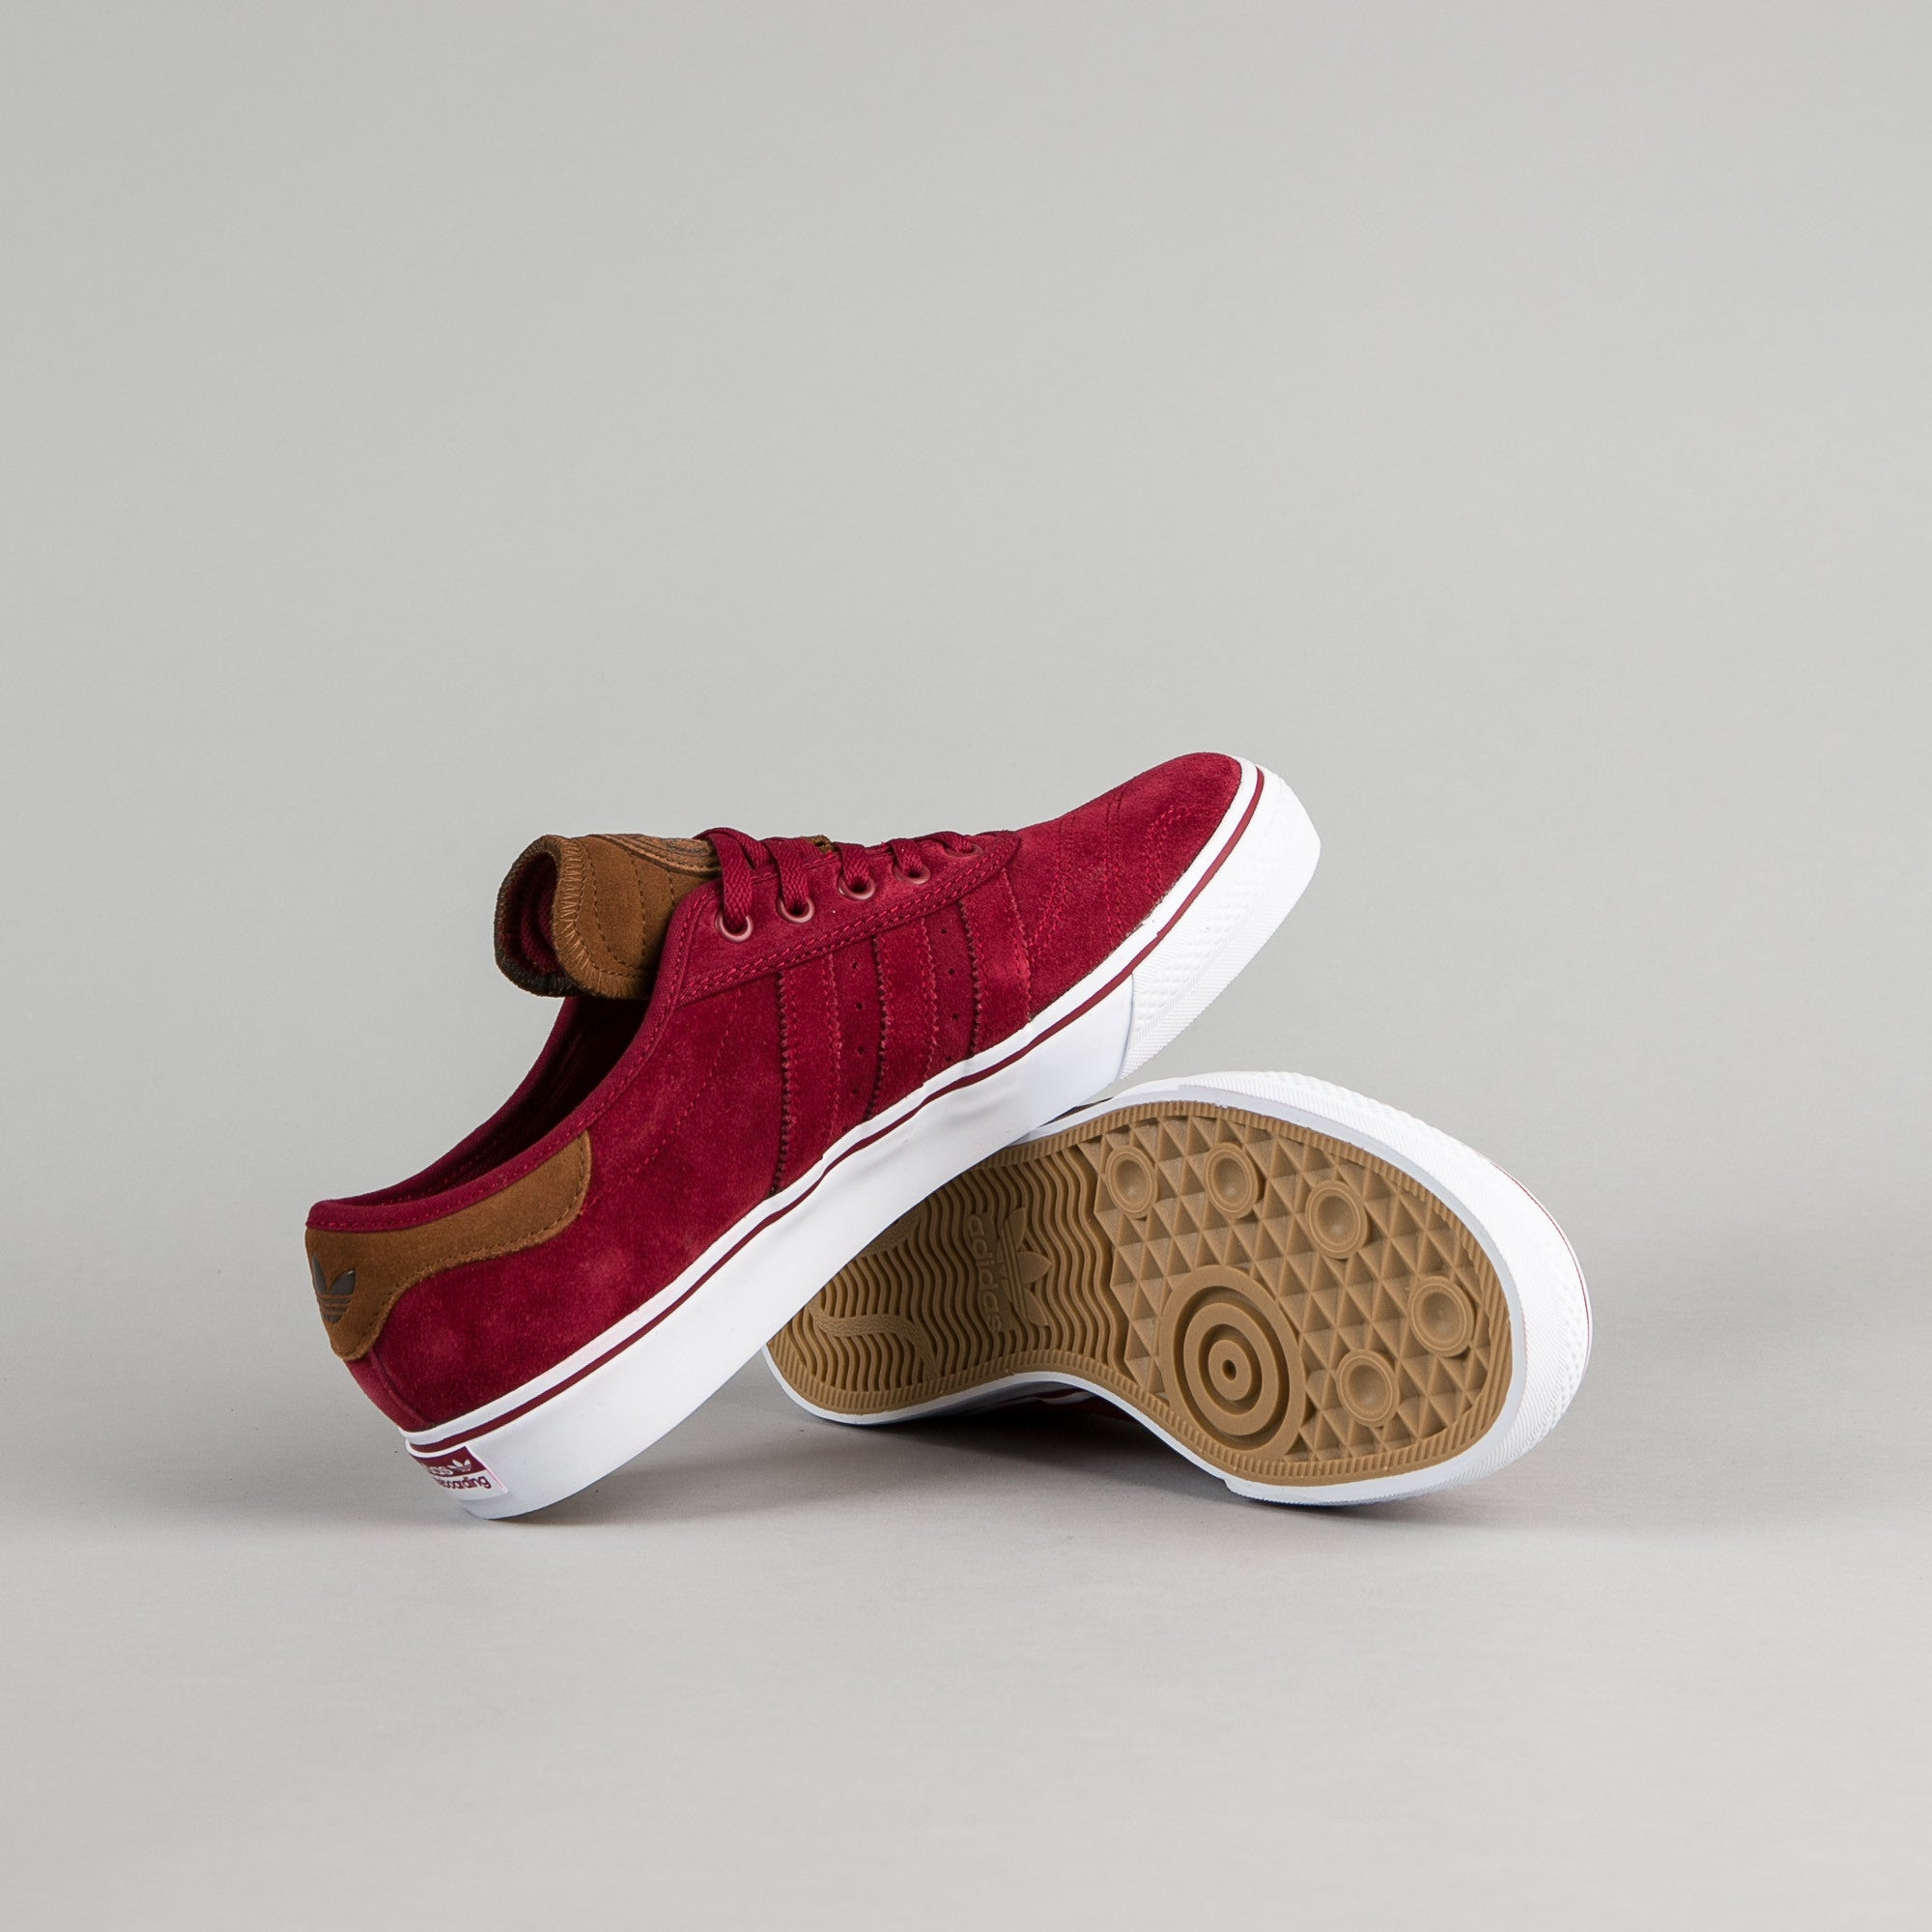 Adidas x Official Adi-Ease Premiere ADV Shoes - Collegiate Burgundy / St Bark / White